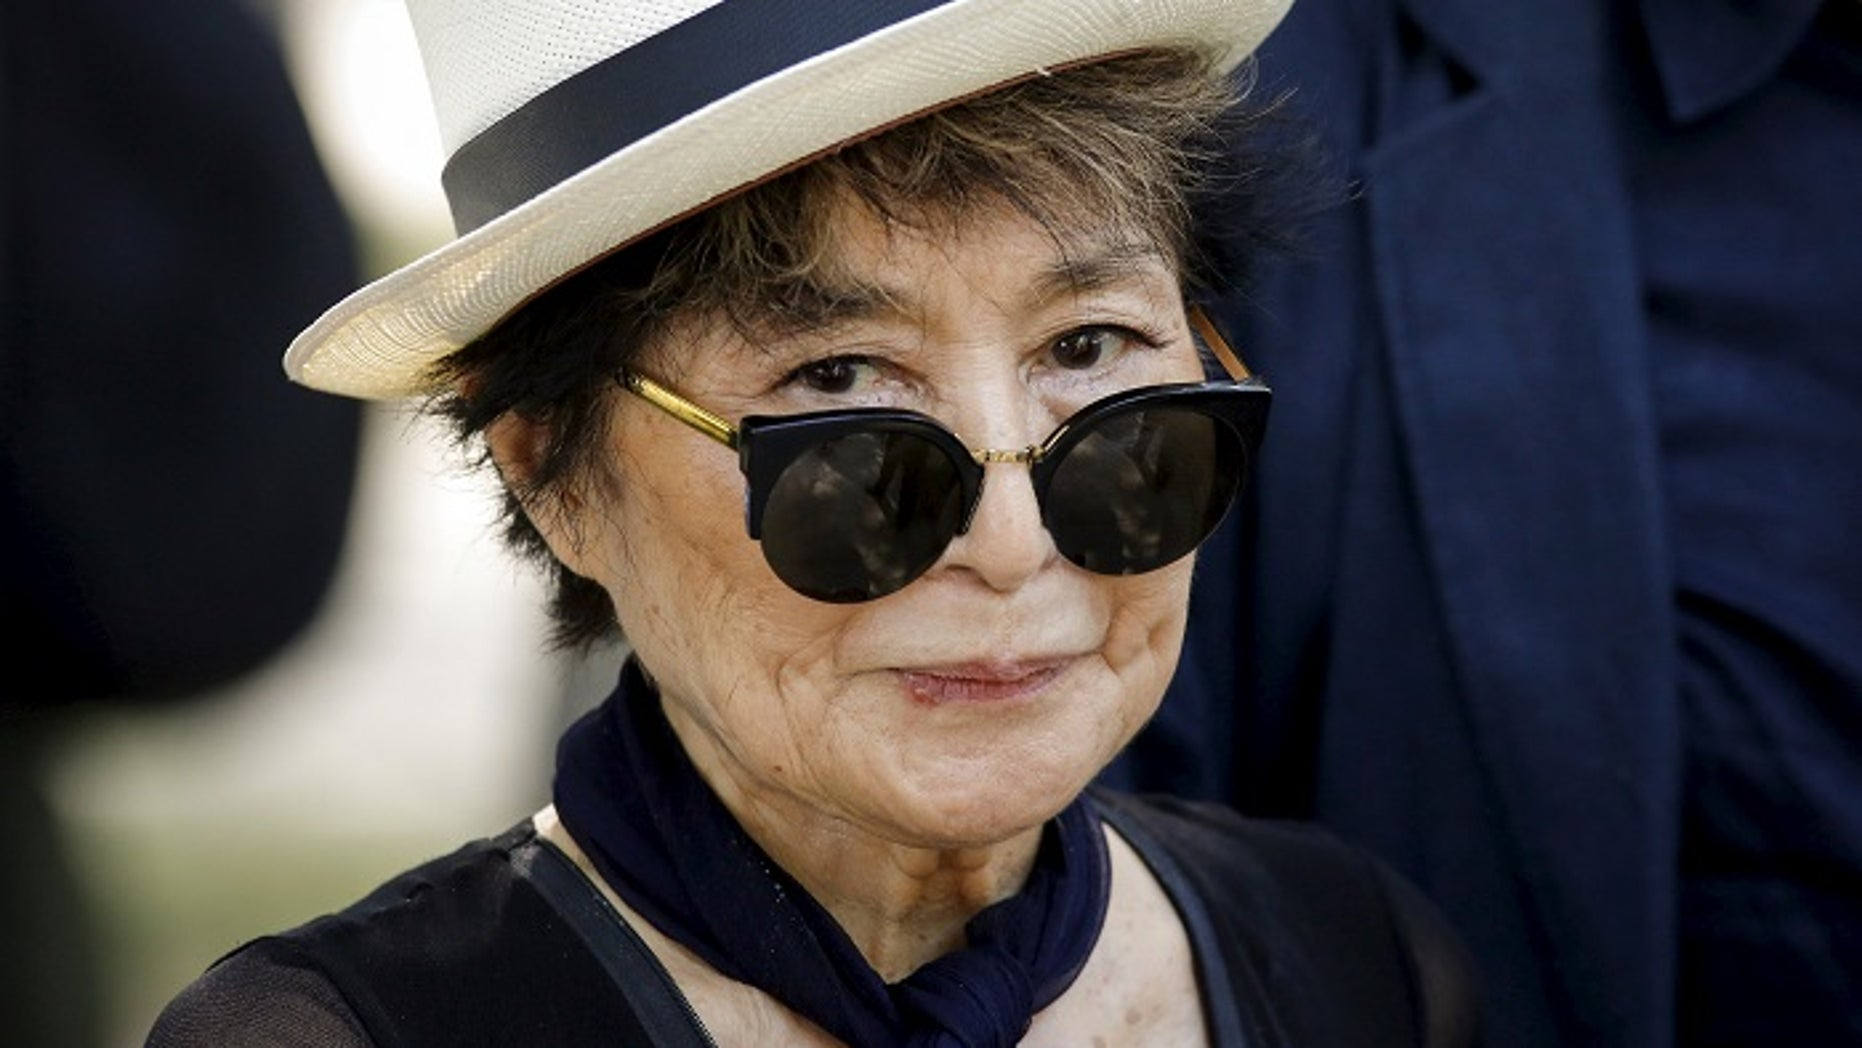 """Yoko Ono has taken legal action against a company claiming the beverage """"abused and misused the legacy of John Lennon to sell their soda."""""""